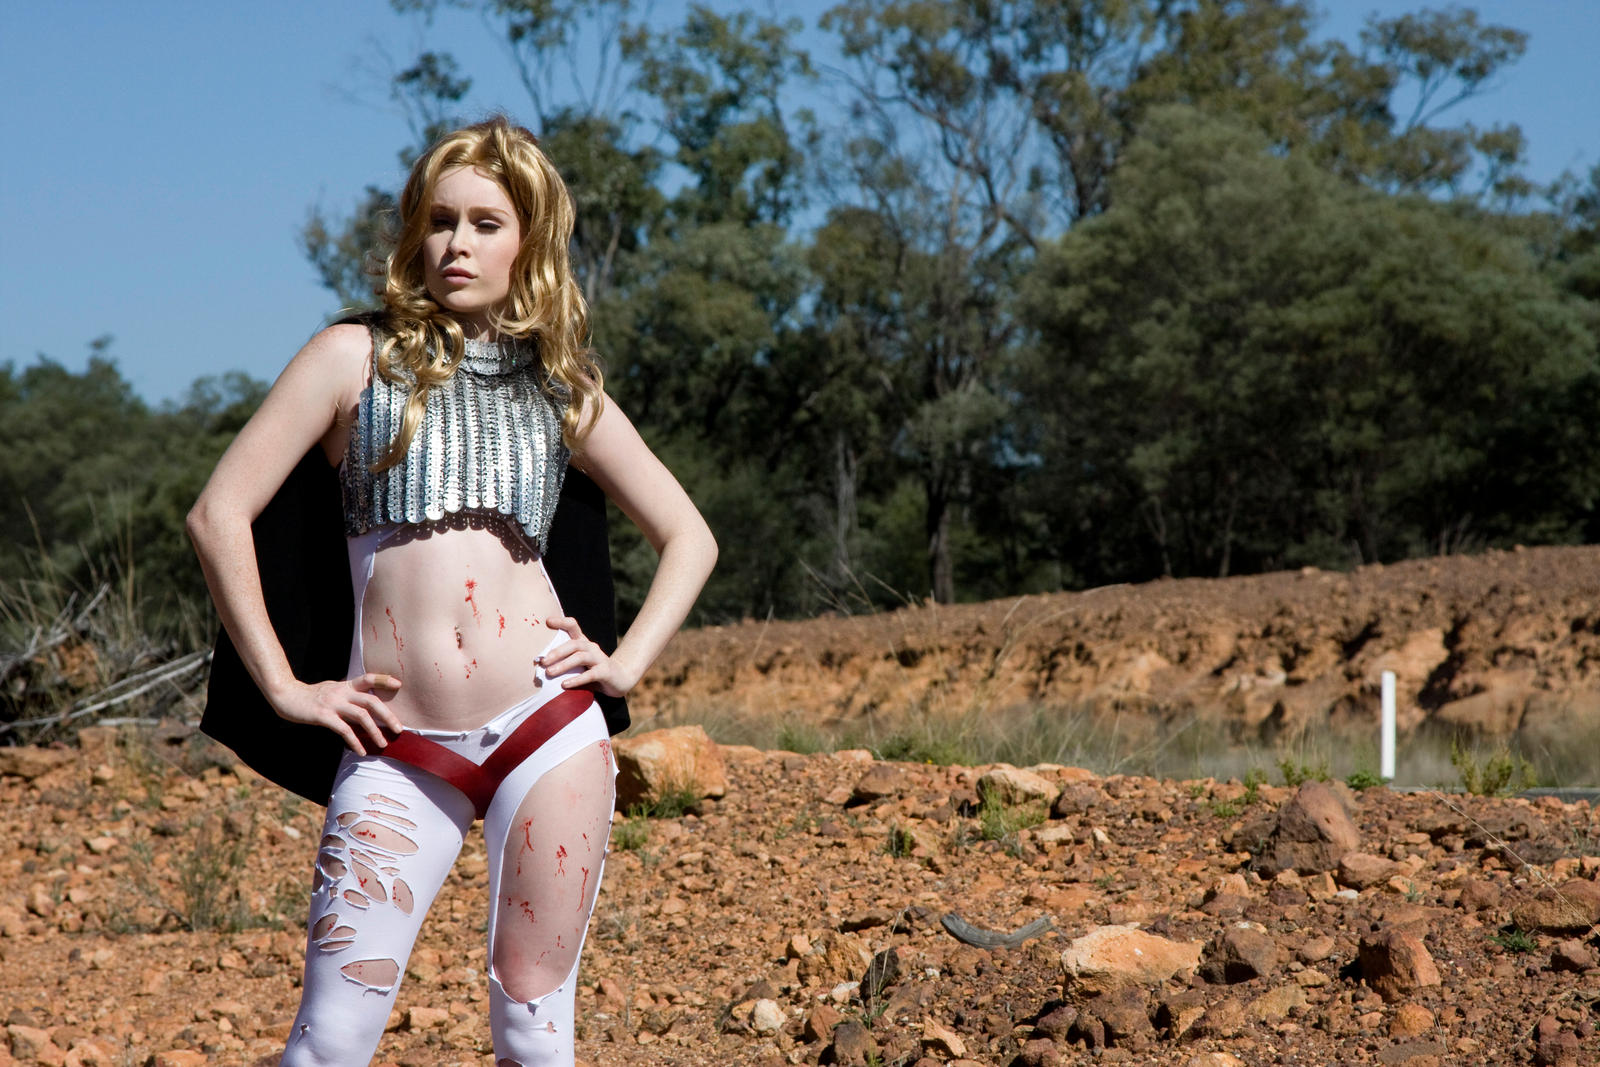 Barbarella Costume Sale | Up to 70% Off | Best Deals Today